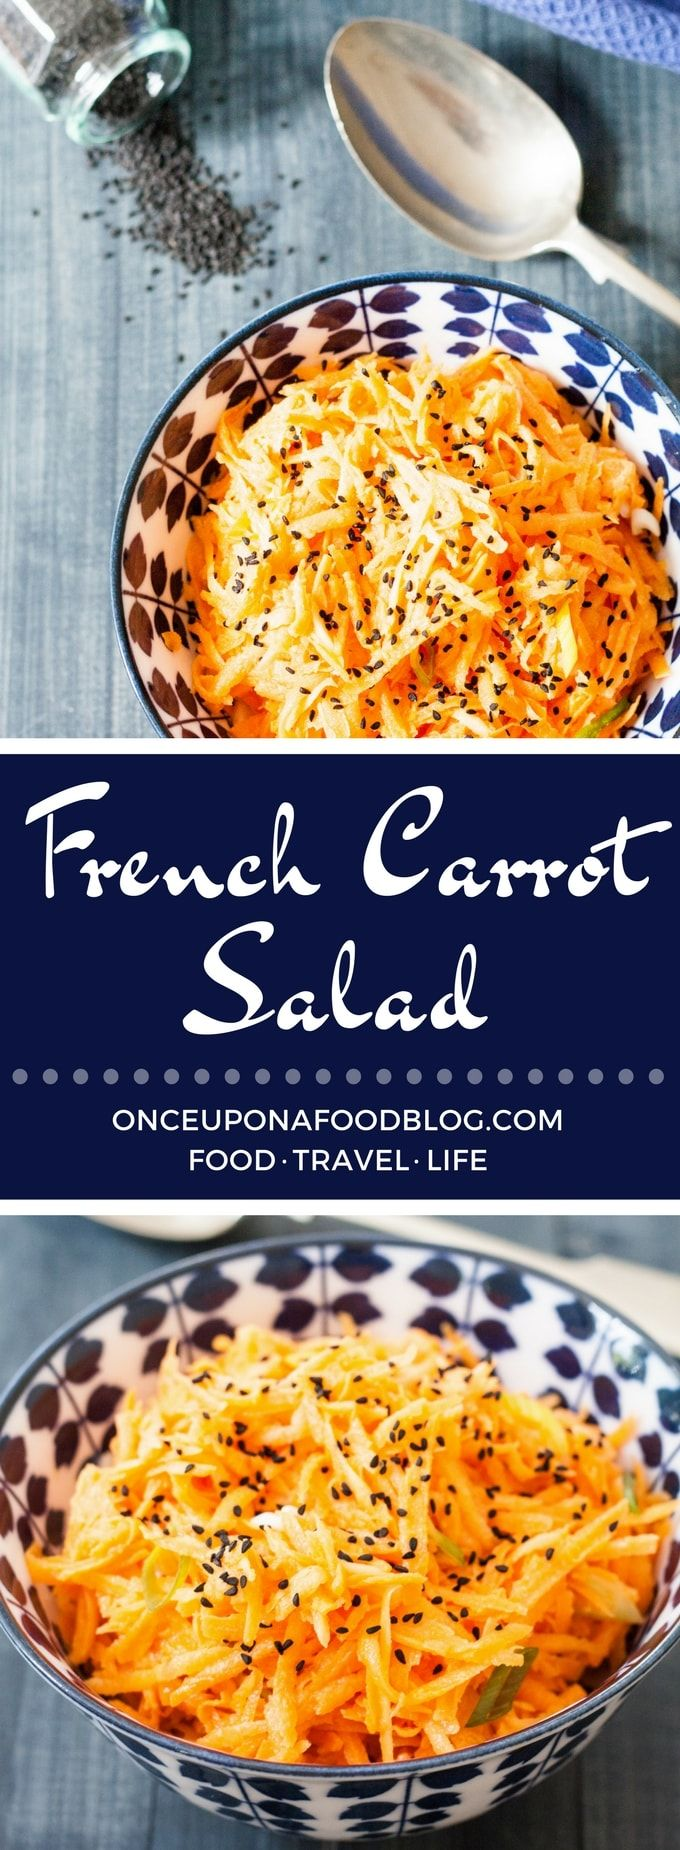 "Originating in France, where it's called carottes râpées, this French Carrot Salad is perfect alongside any simply cooked meat or fish."" width="